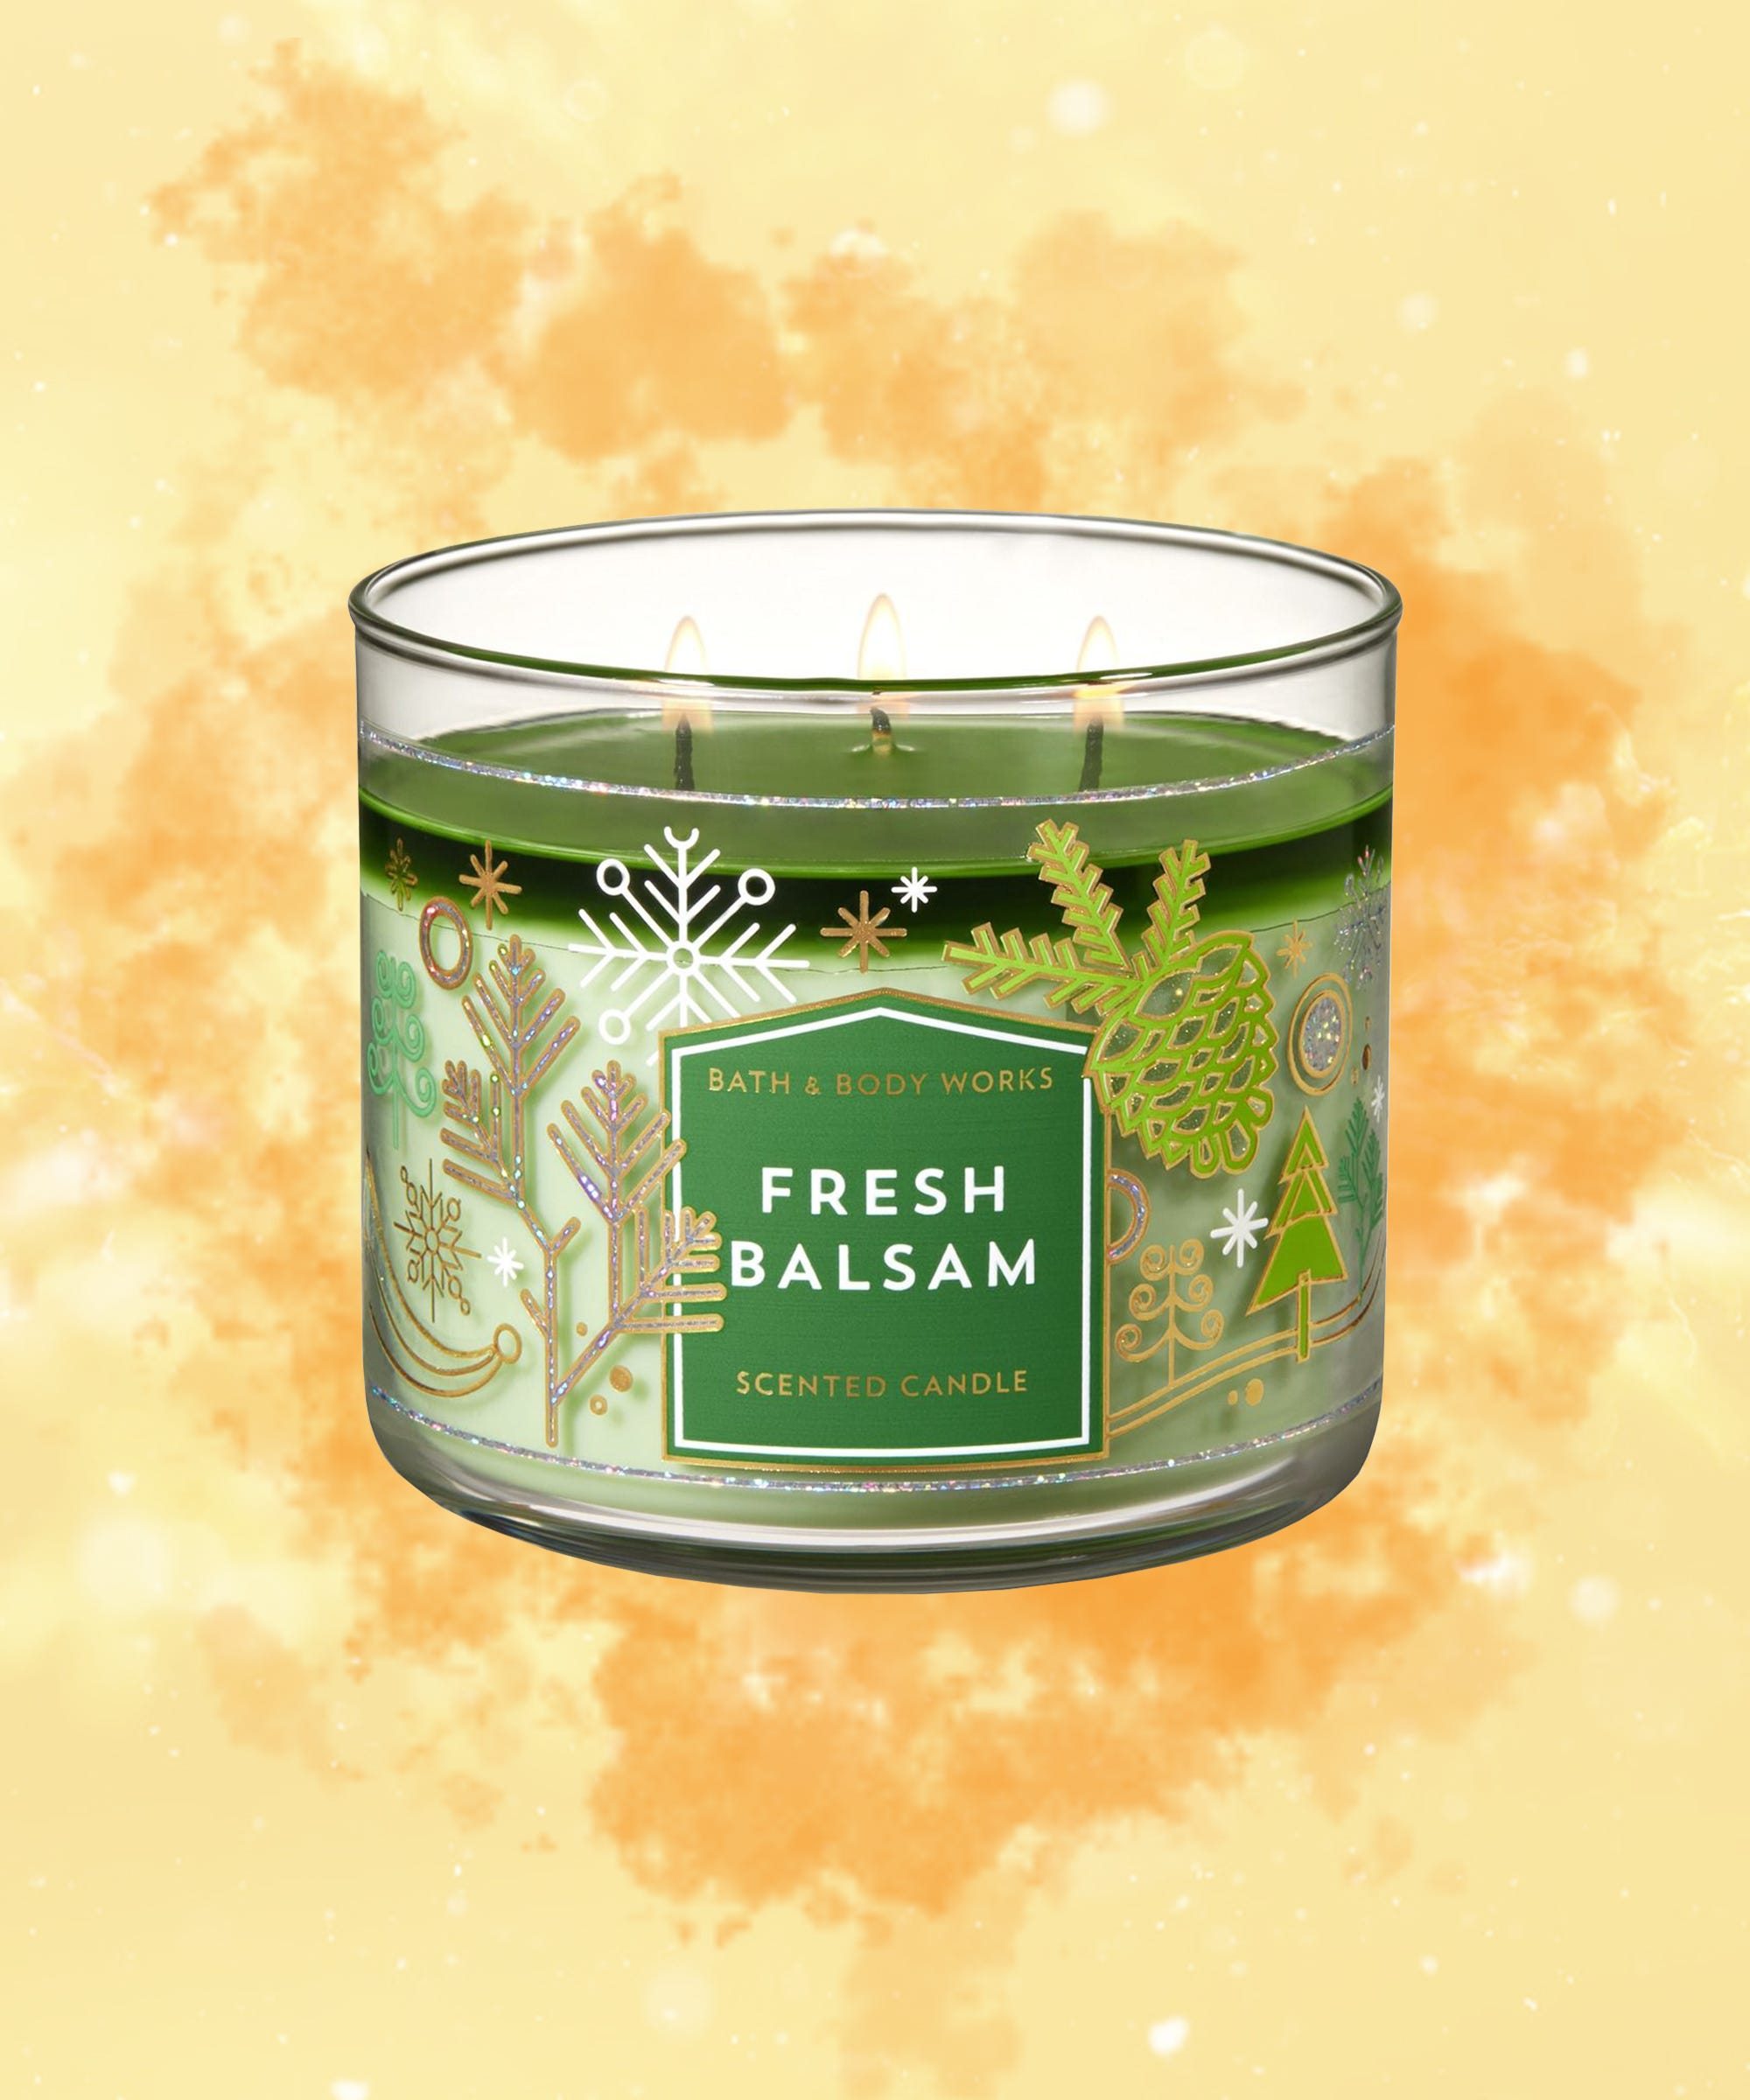 Bath And Body Works Candle Day 2018 Sale Has 8 Candles